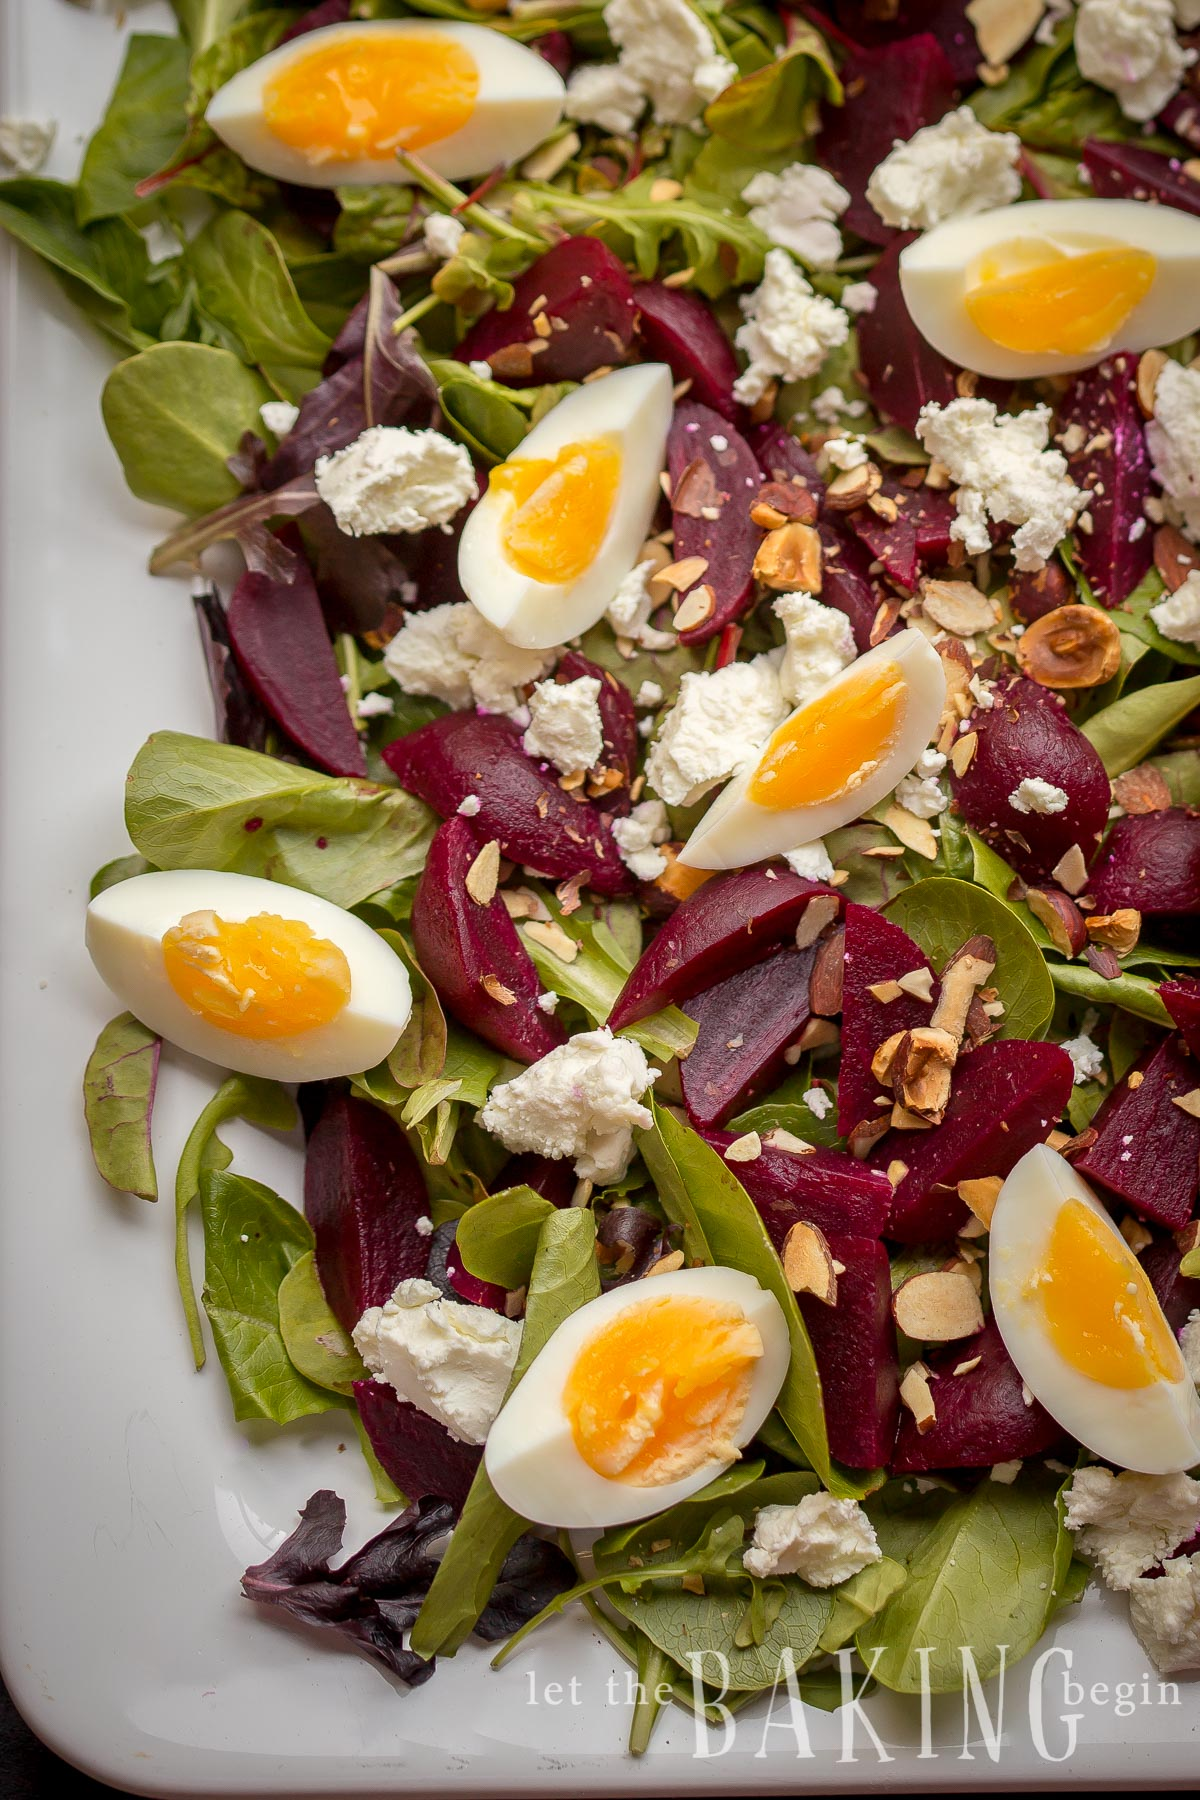 Beet Beet and Goat Cheese Salad with Egg is served on a bed of Spring Mix Salad, then sprinkled with Goat Cheese, Hazelnuts and Egg